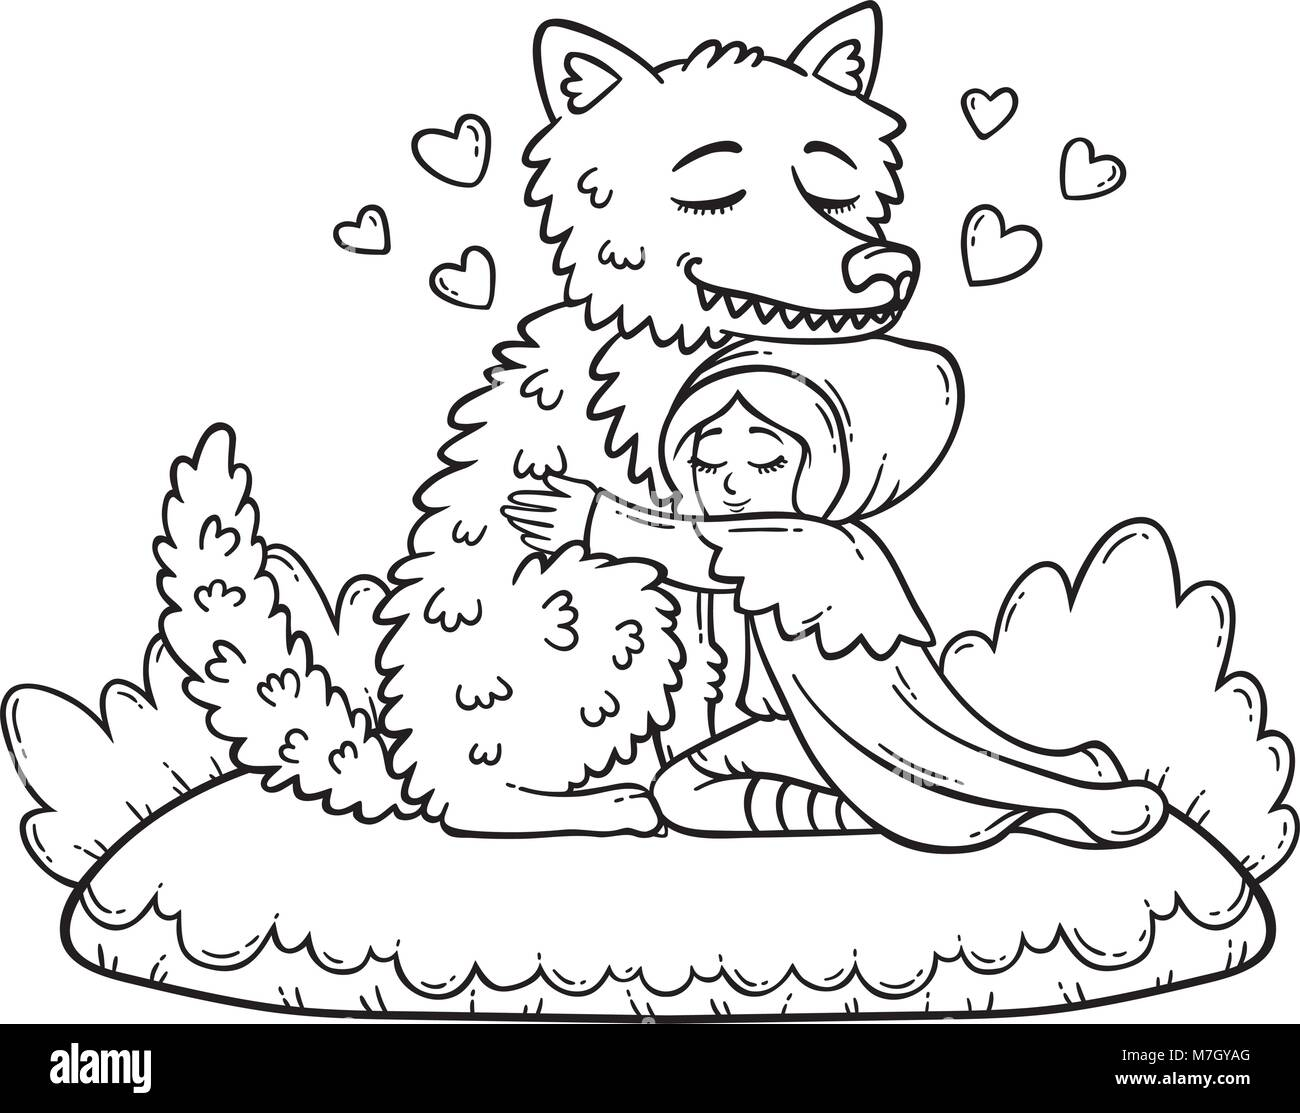 34 Red Riding Hood Coloring Pages